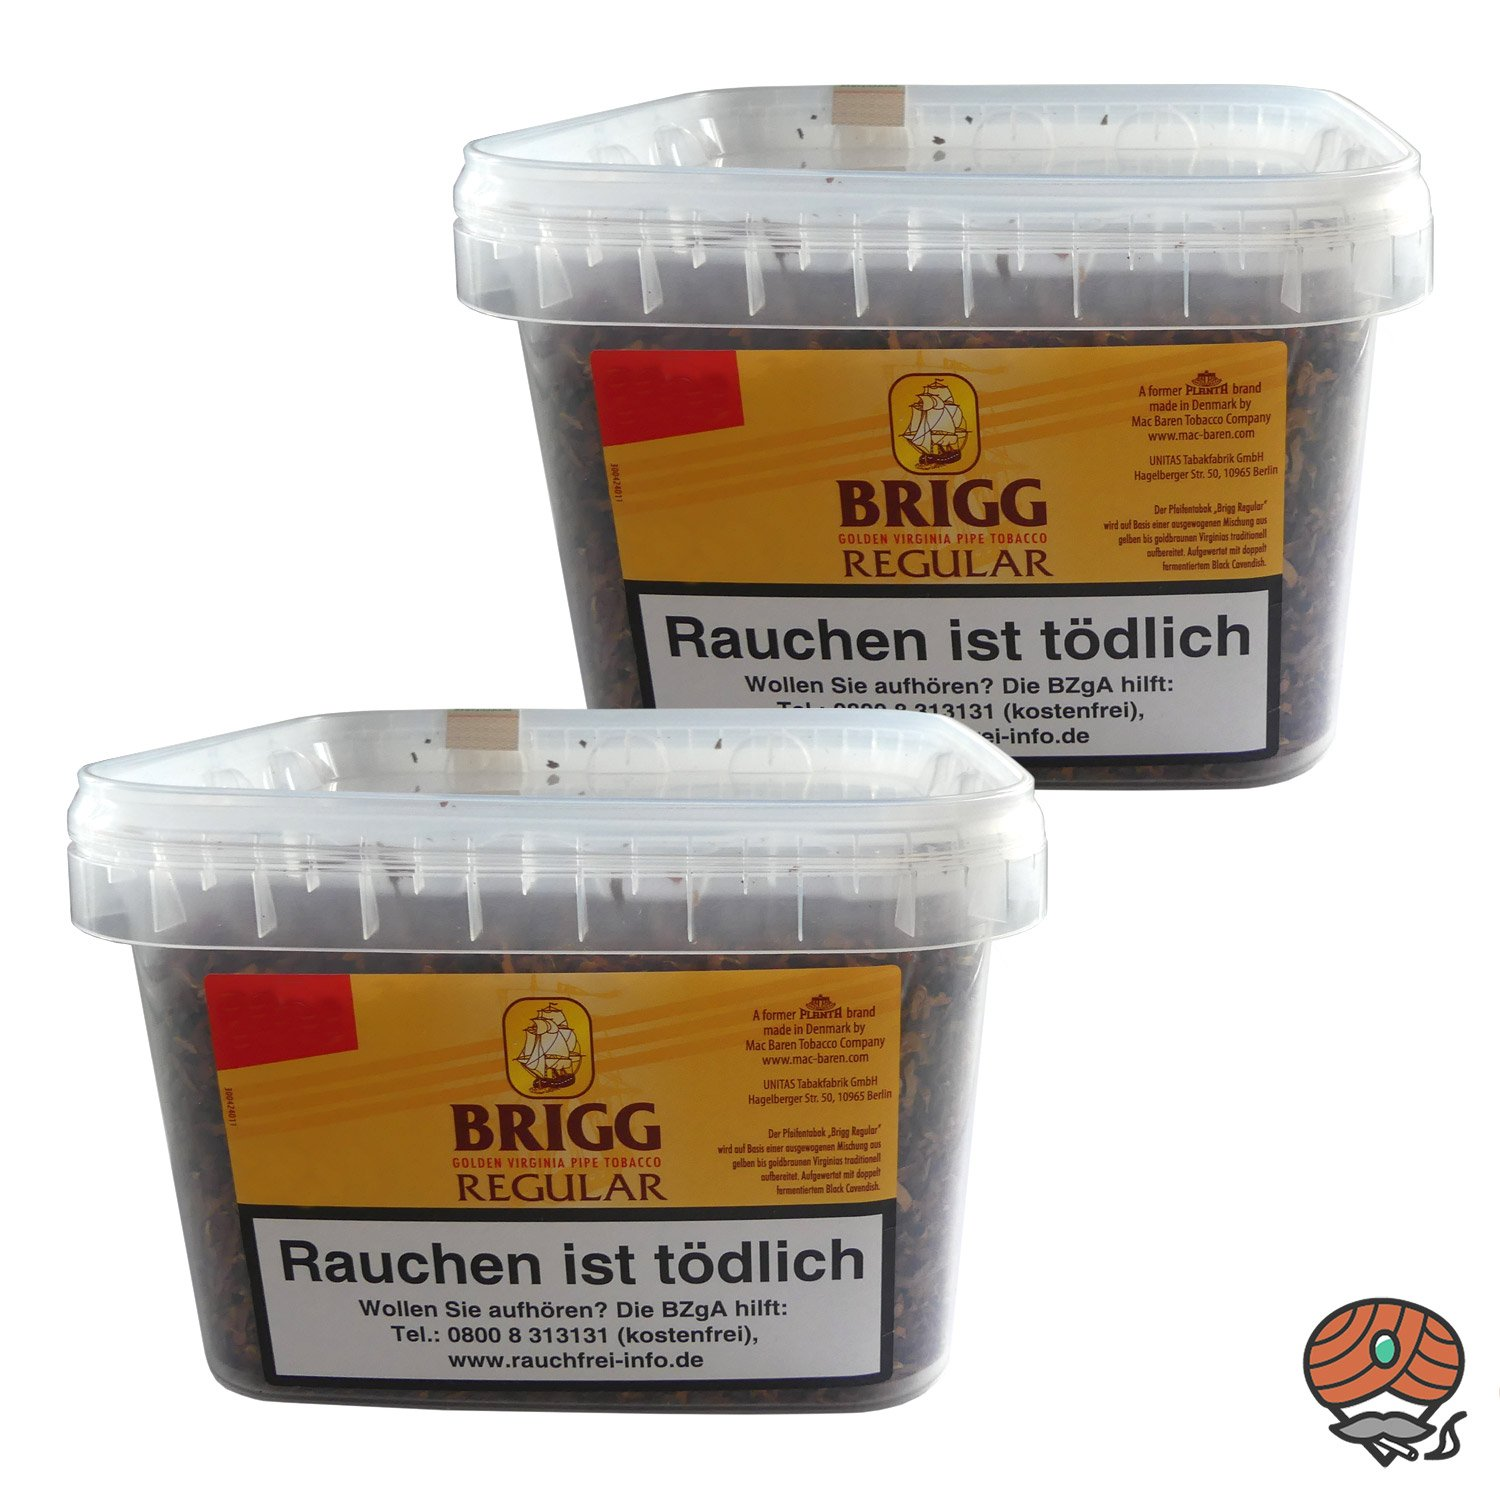 2x Brigg Regular Pfeifentabak (Golden Virginia Tabak) im 400 g Eimer